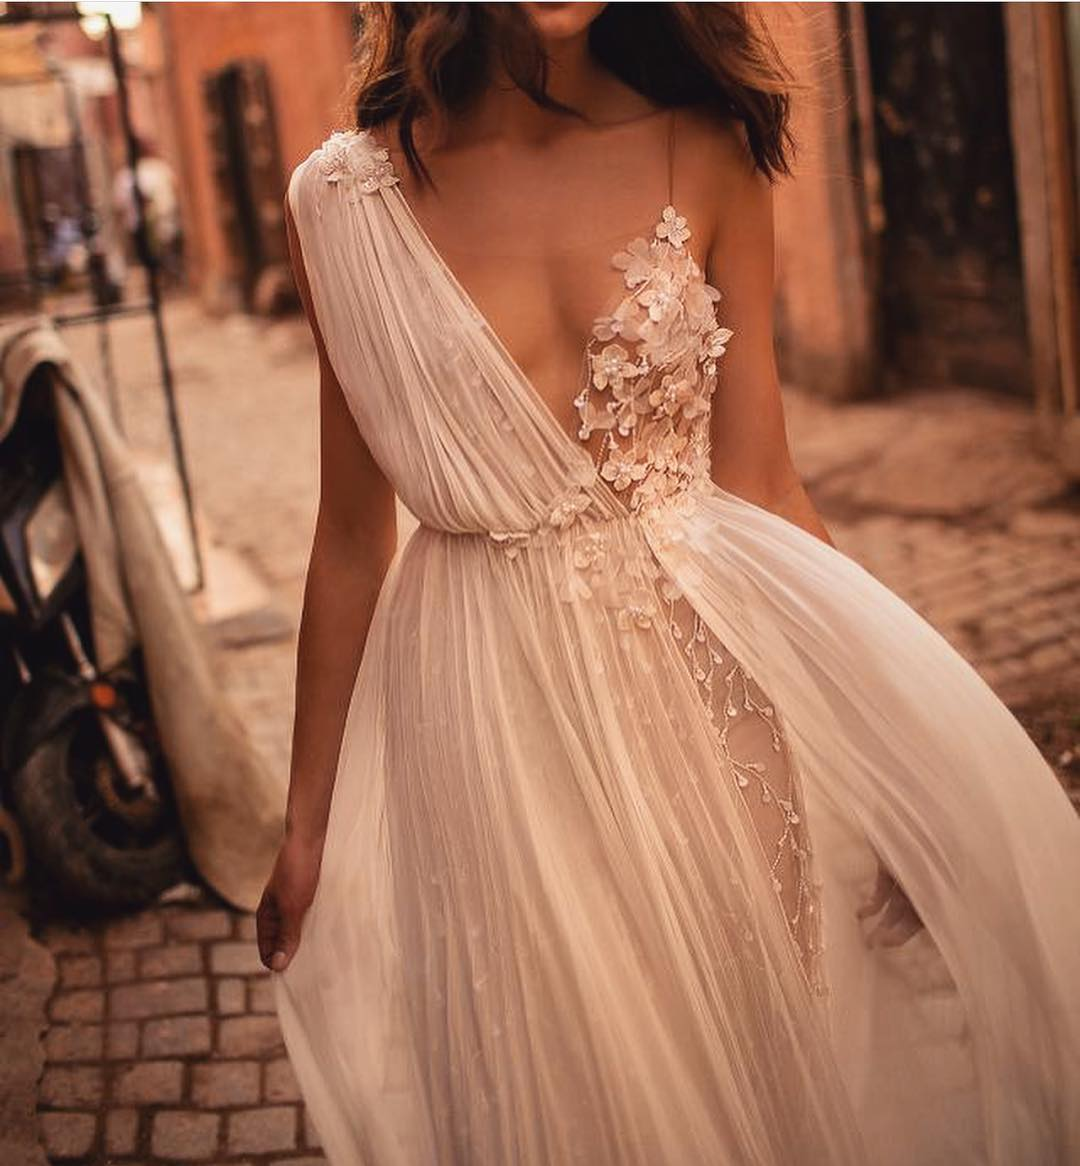 Tulle Dress With One Shoulder And Spaghetti Strap For Special Summer Events 2019